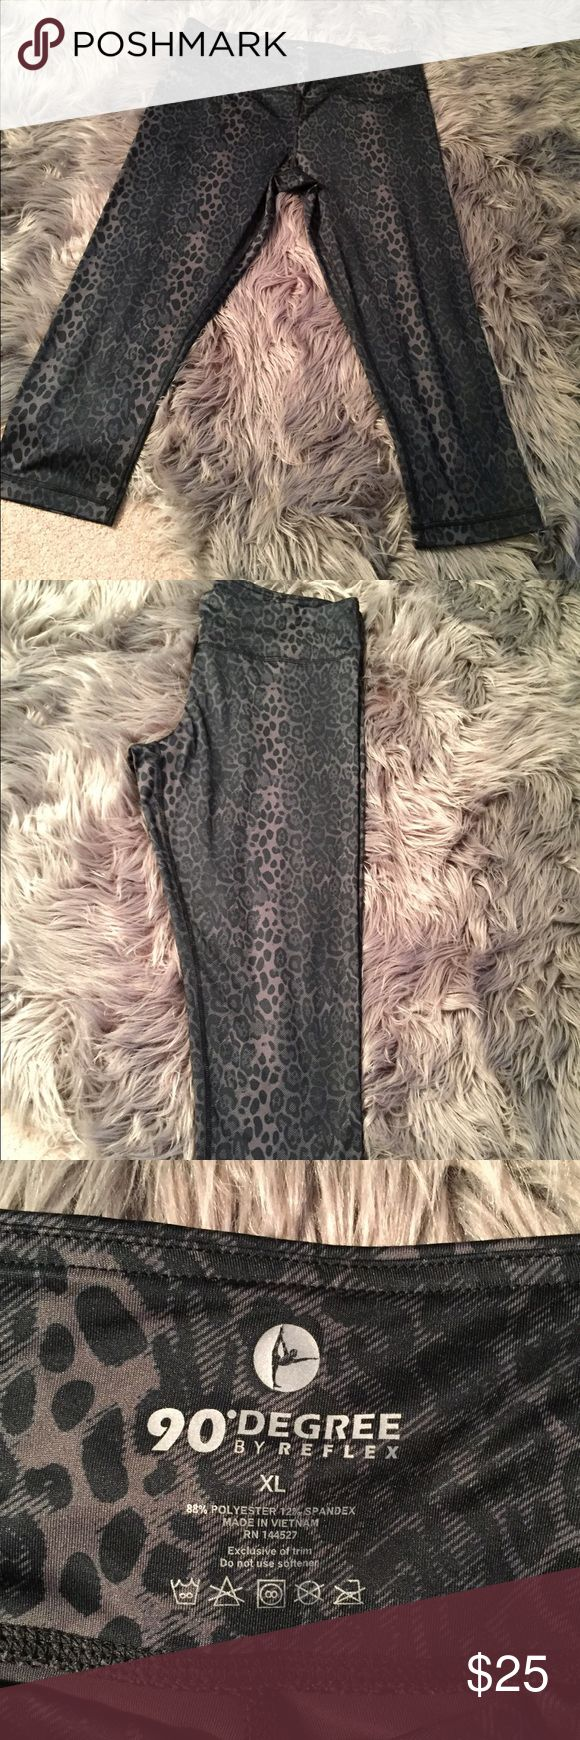 Grey Cheetah Cropped Workout Leggings Worn once. Extremely soft and comfortable workout/activewear leggings. Size women's XL. 90 Degrees by REFLEX Pants Track Pants & Joggers